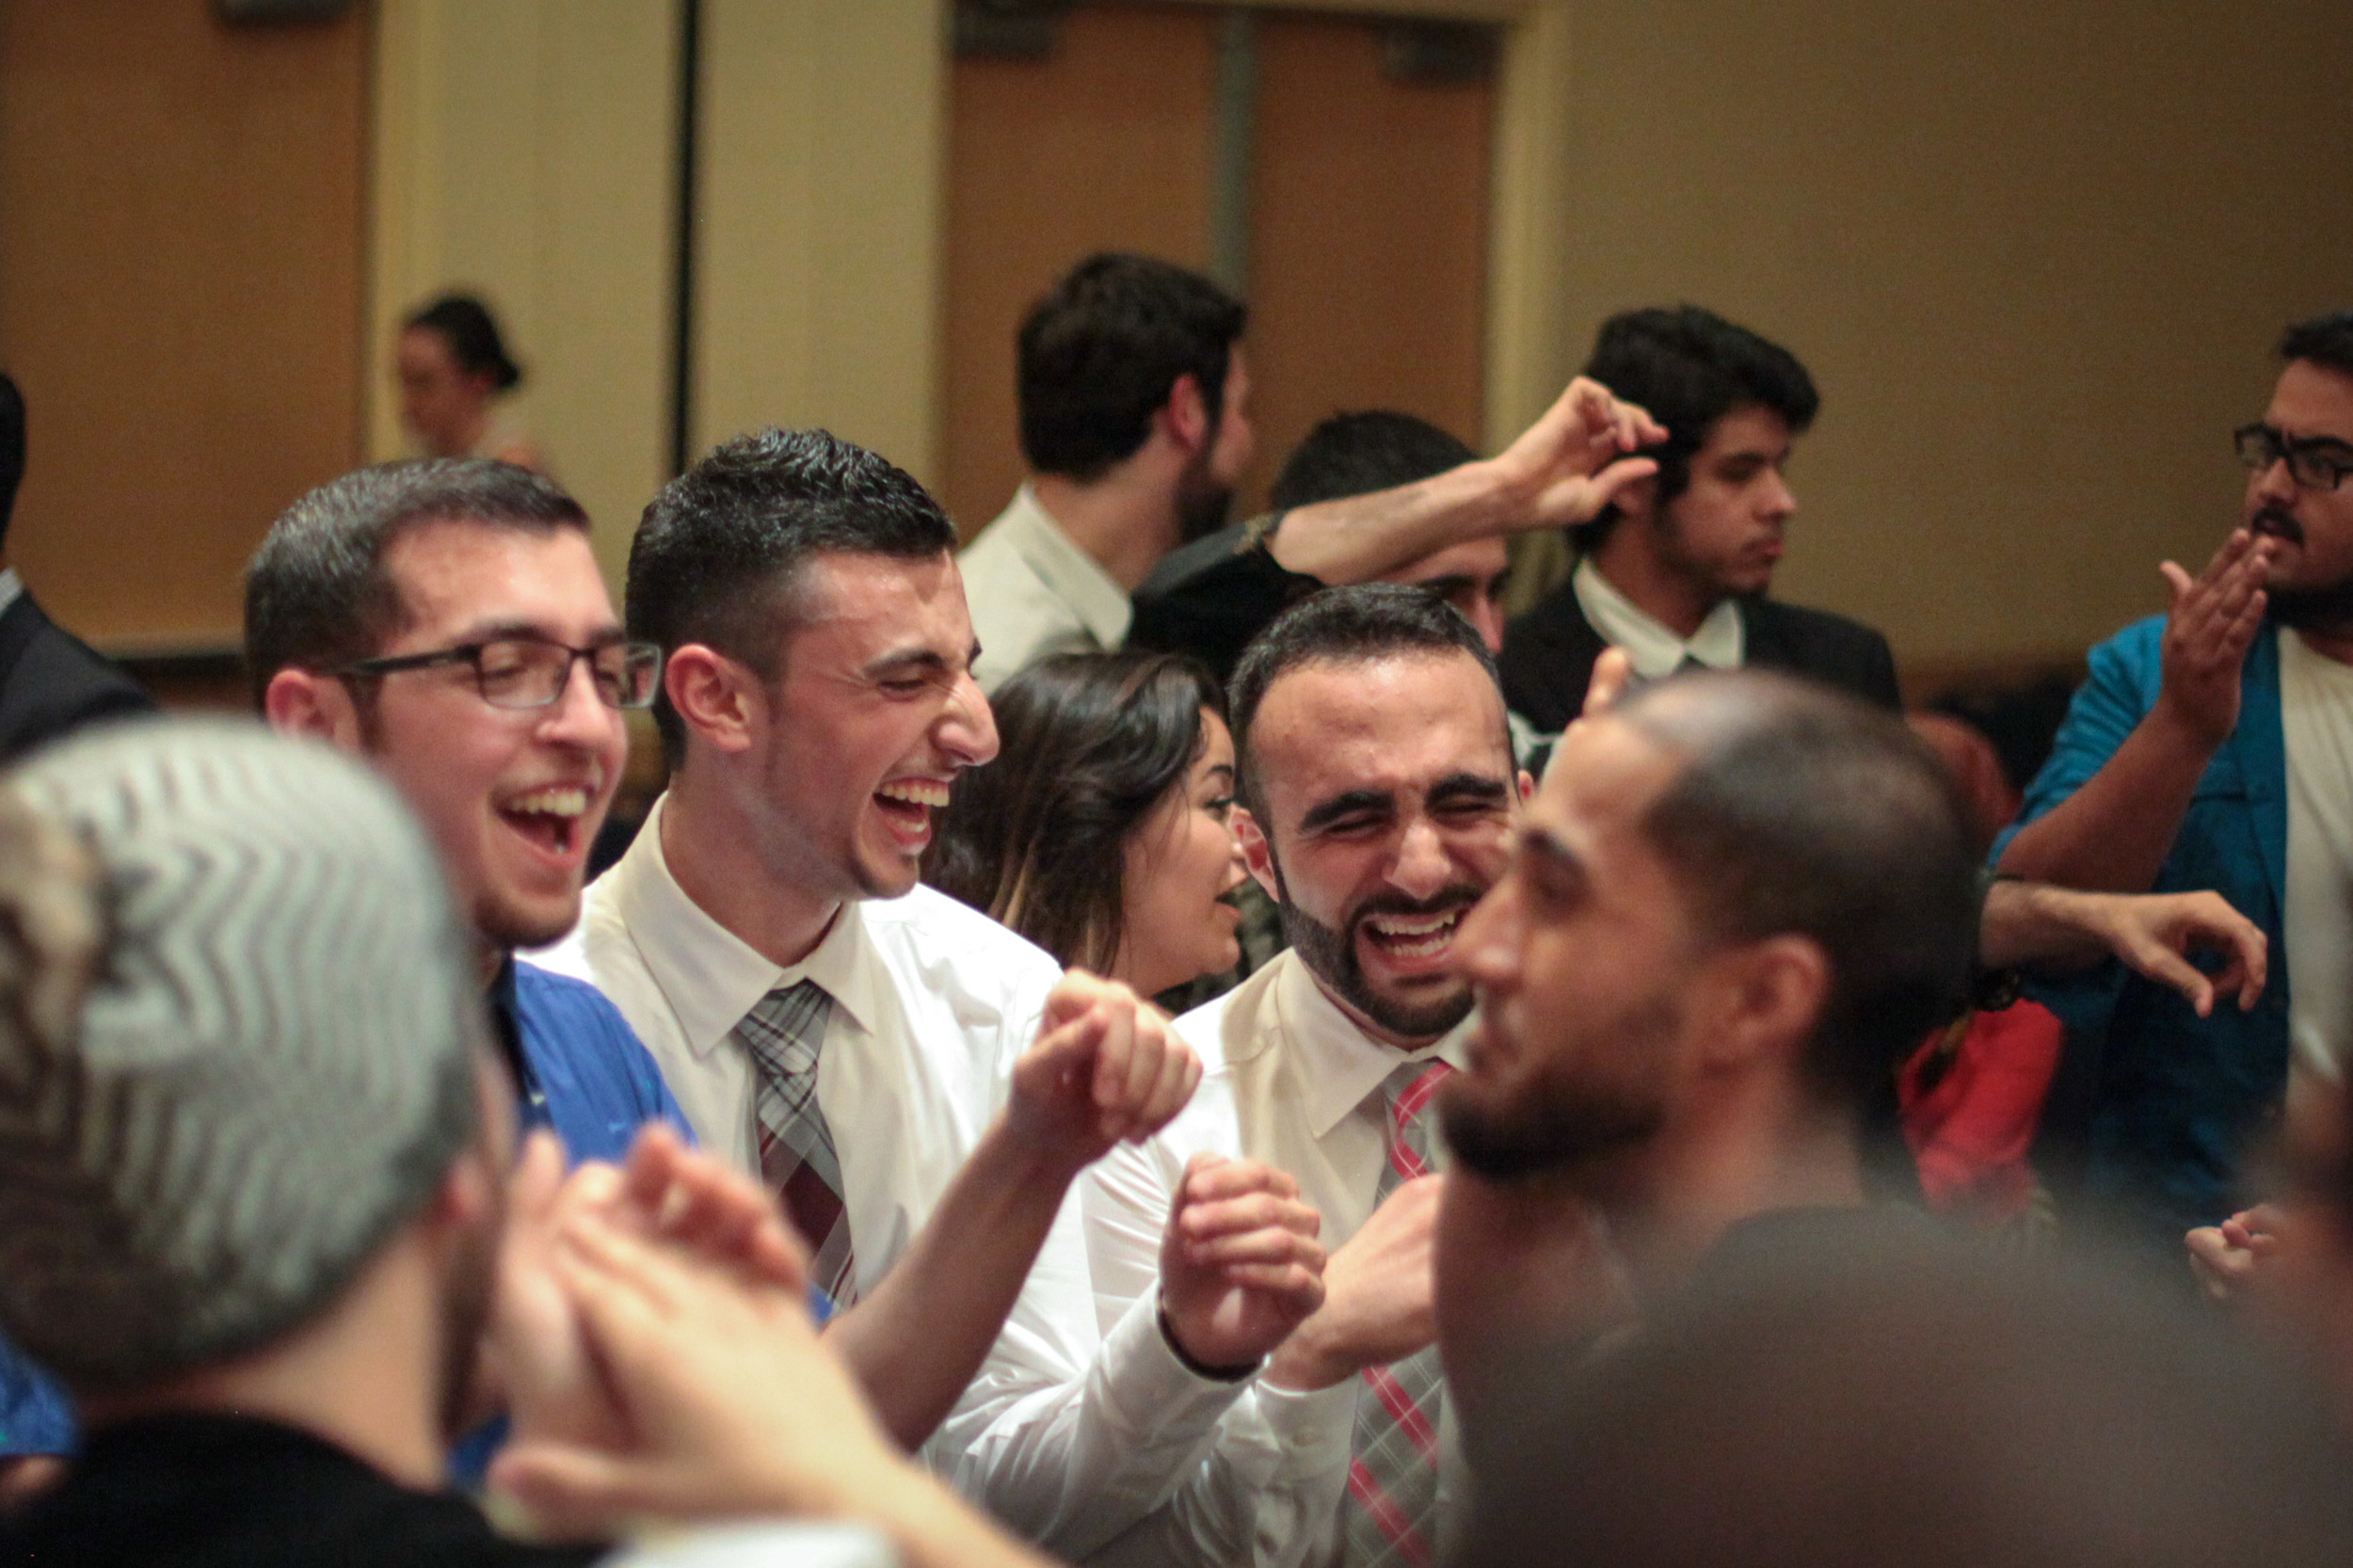 Mahmoud and Sohail dancing at the ASU banquet |  Davis, CA